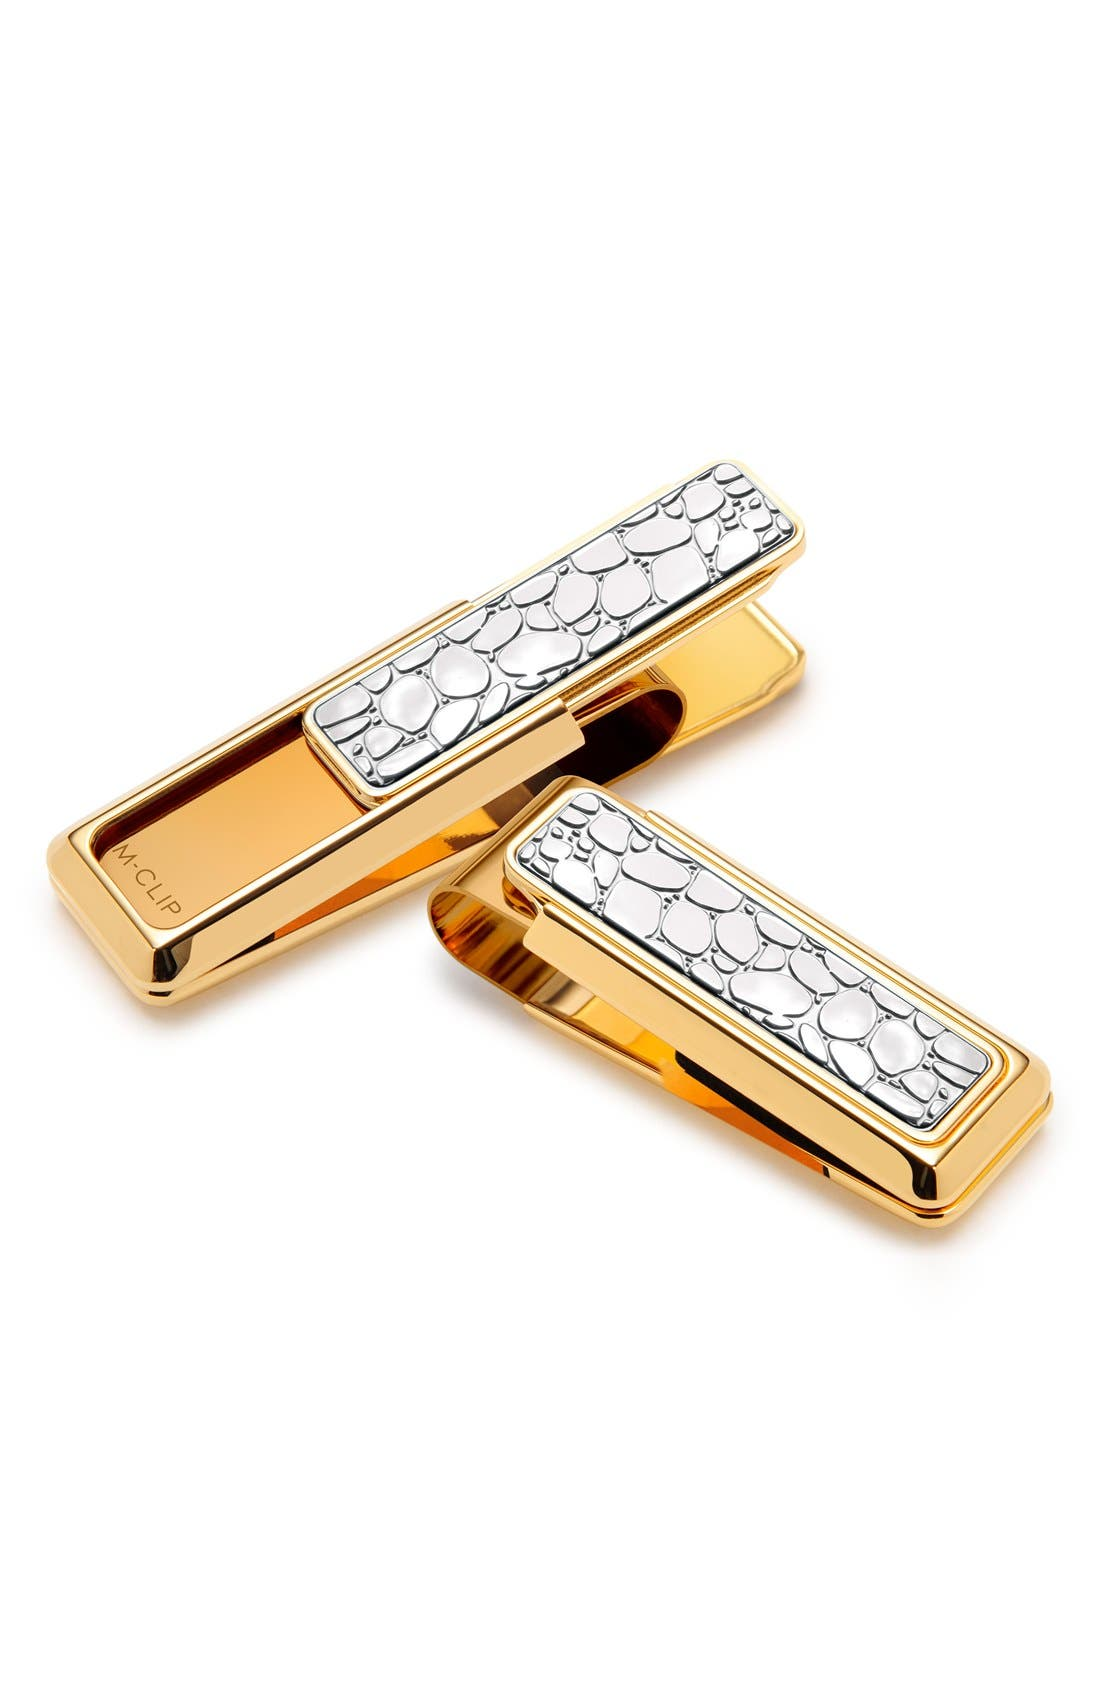 'River Rock' Money Clip,                             Main thumbnail 1, color,                             Yellow Gold